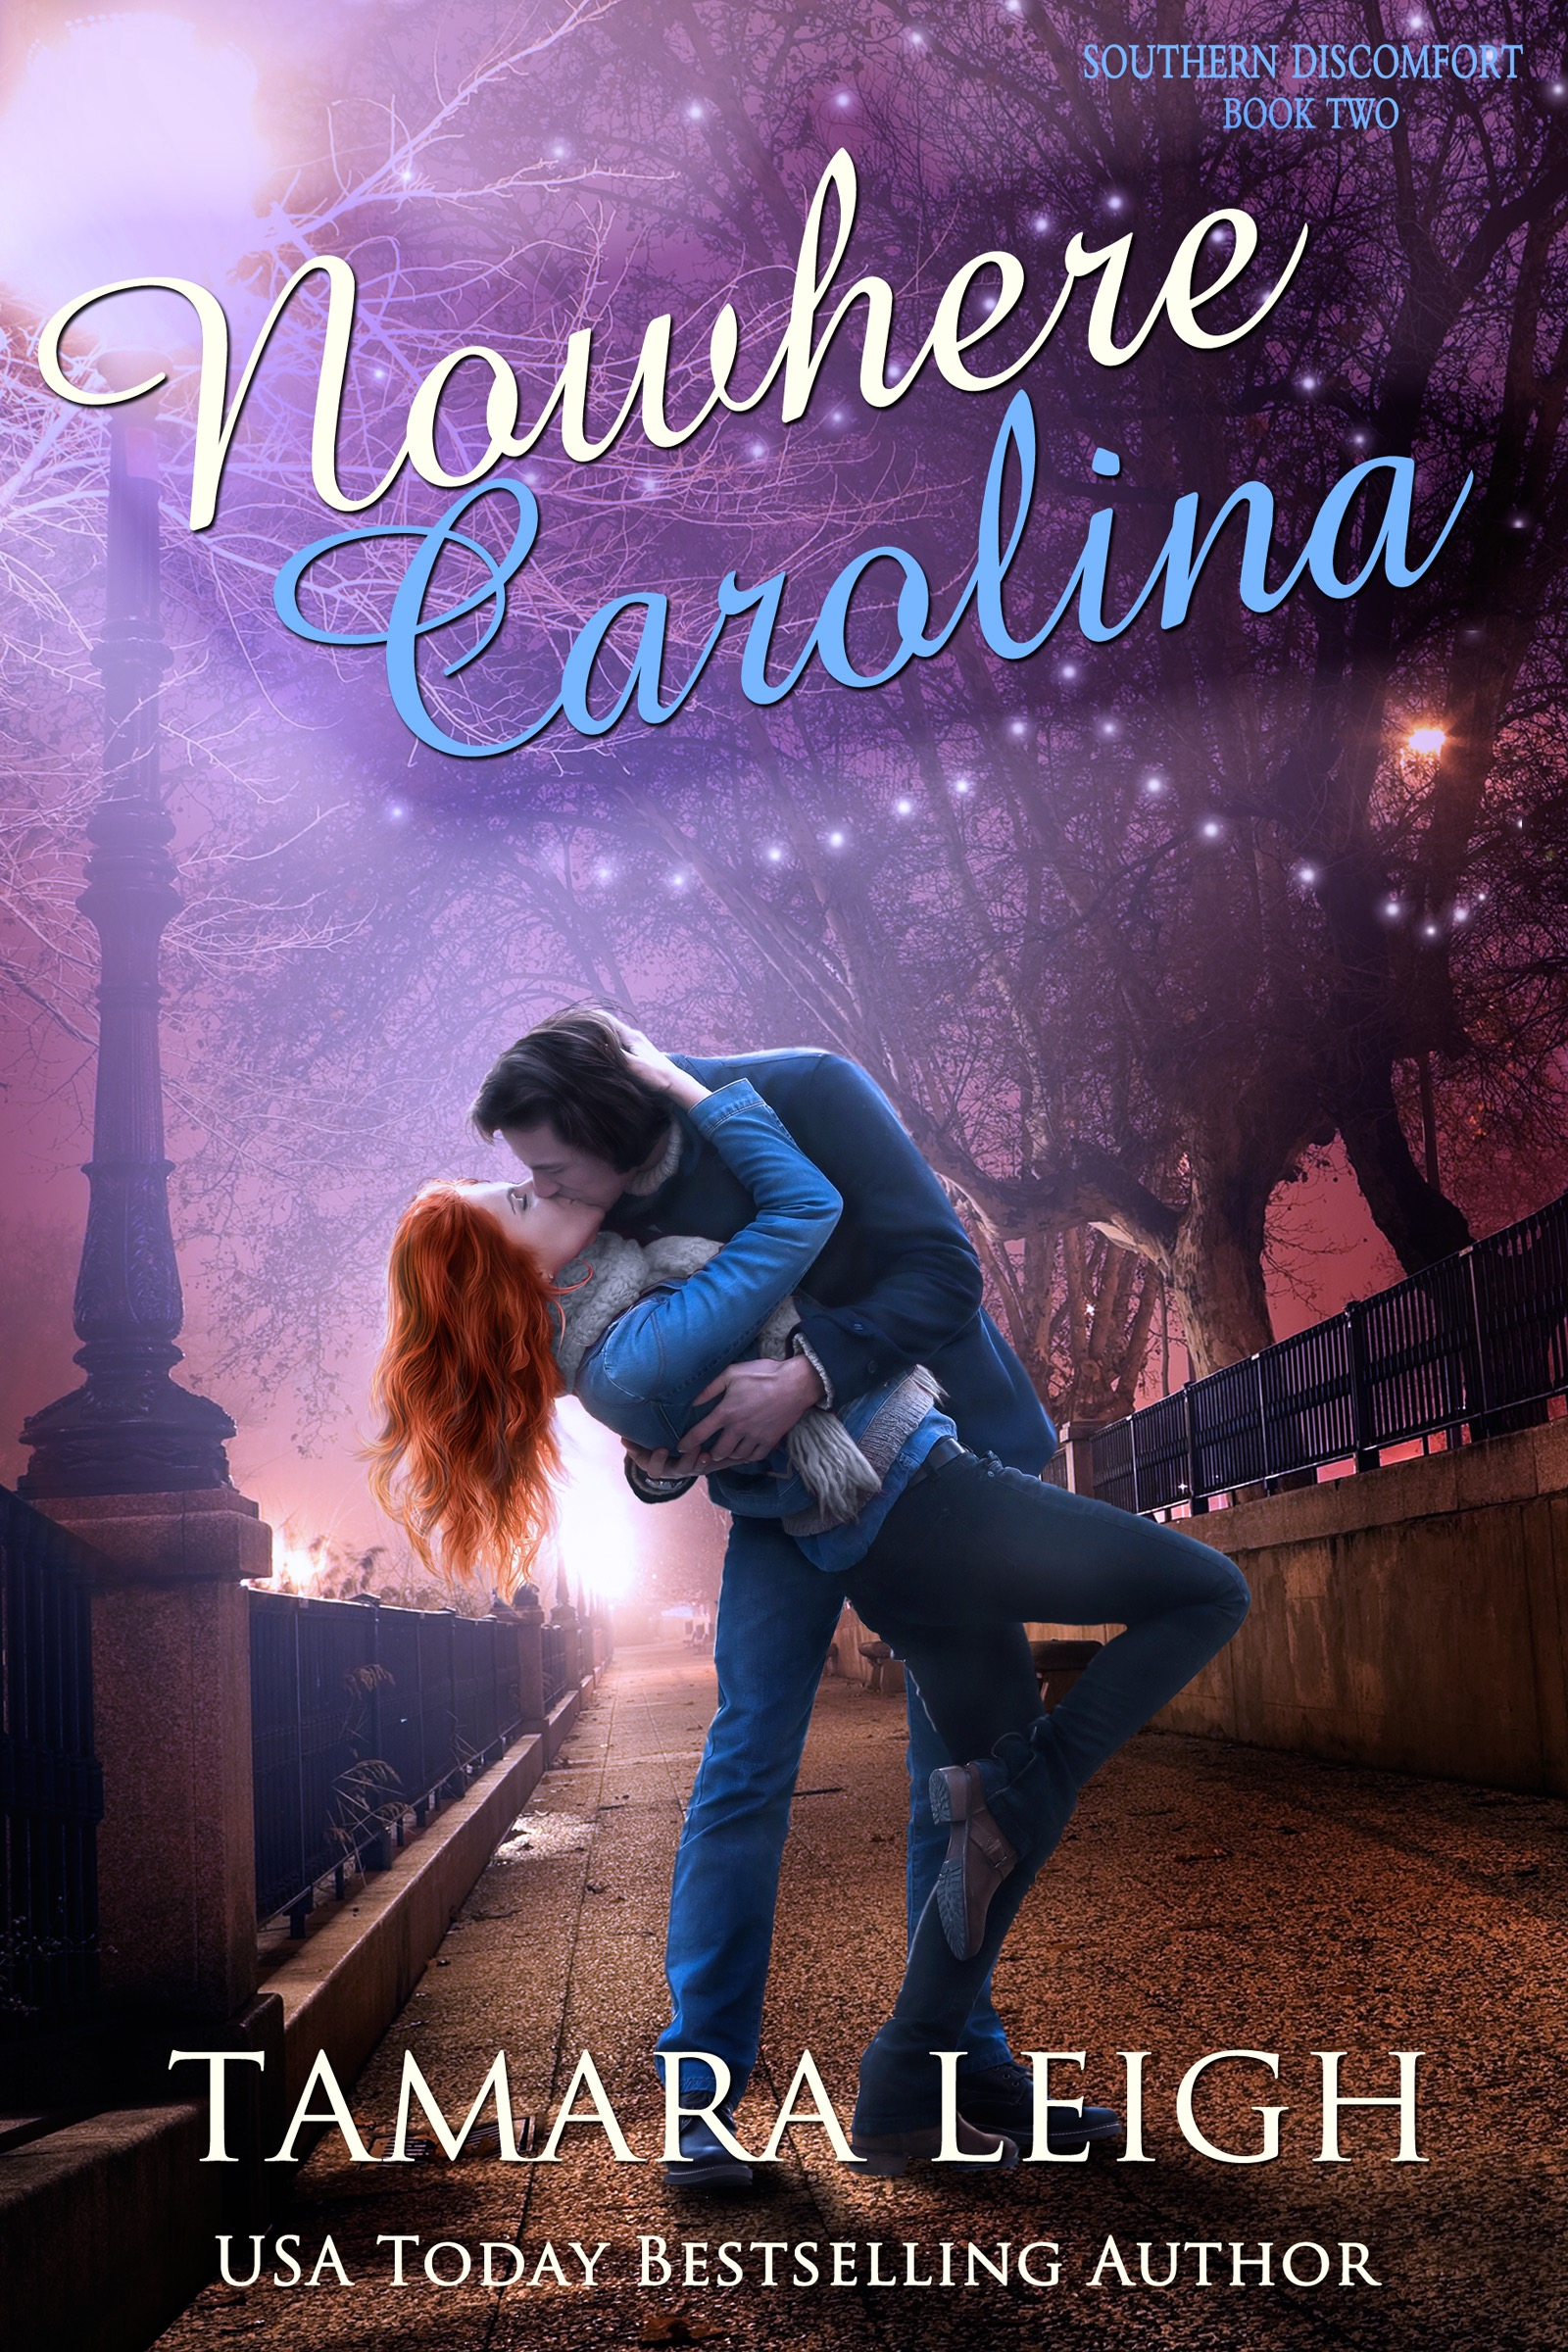 Contemporary Christian Romance